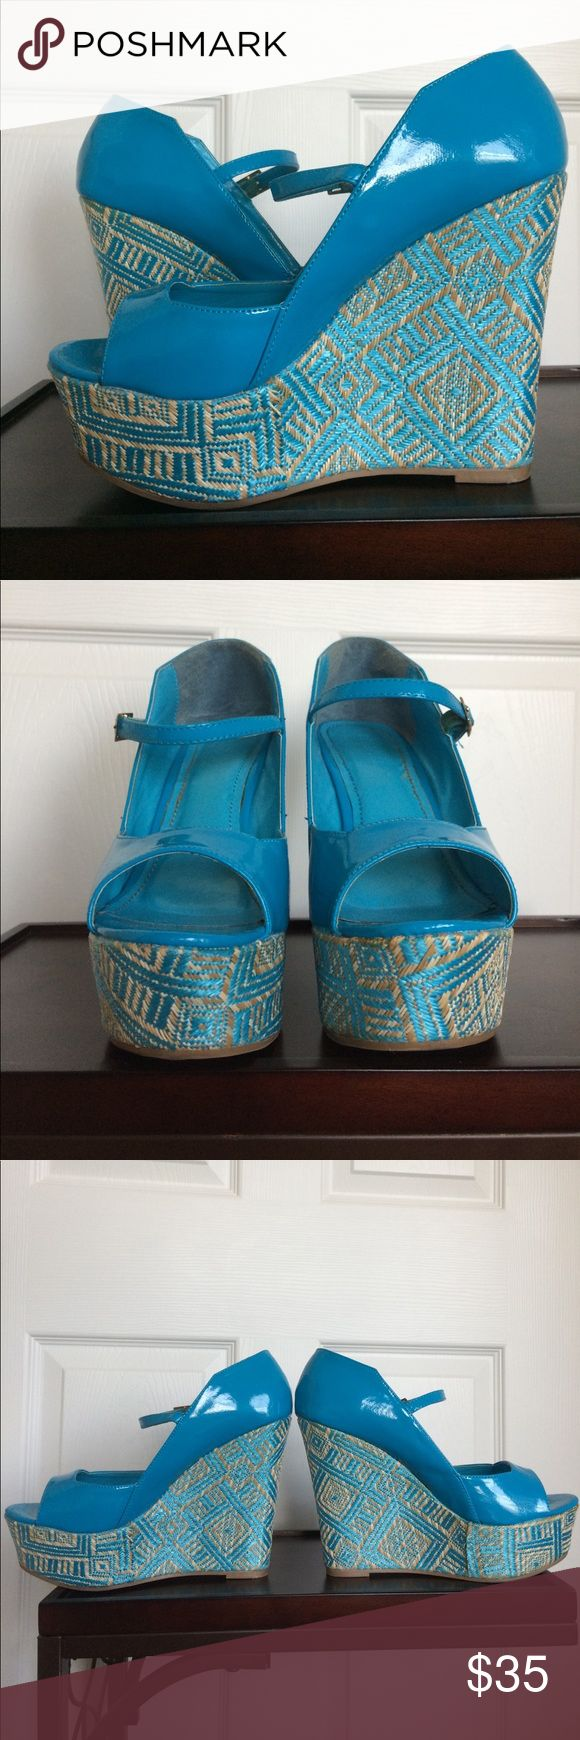 VGUC Liliana Paxton Turquoise Wedges Size 10 VGUC Liliana Paxton Turquoise Wedges Size 10. Worn 5-10 times. Feature silver hardware. Fit TTS. They're even prettier in person and a guaranteed conversation-starter!  Liliana Shoes Wedges